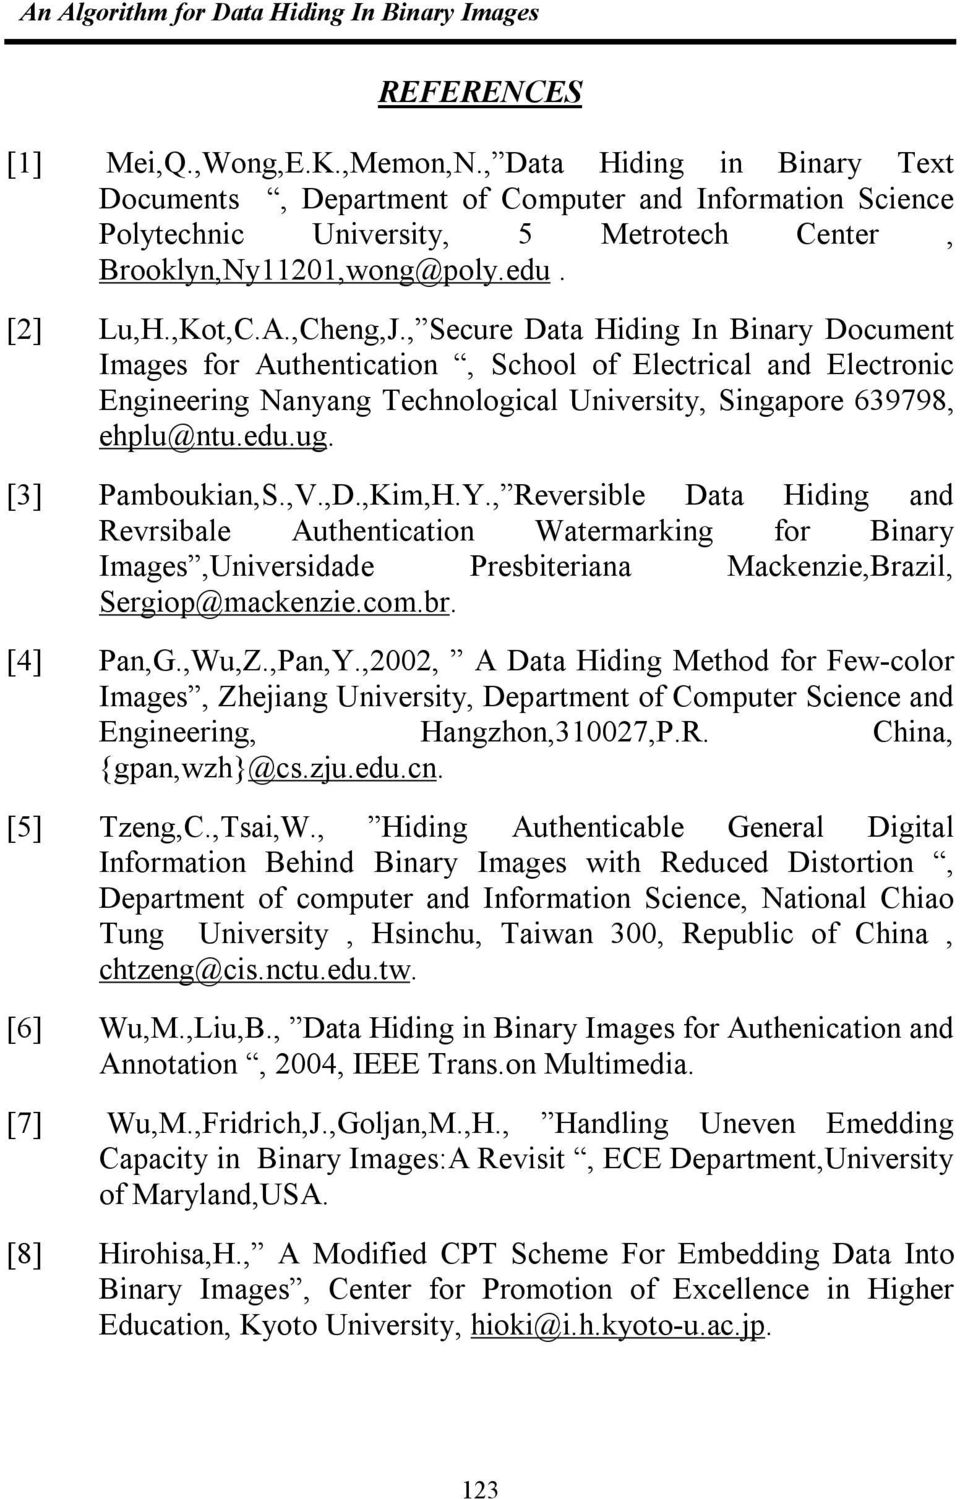 , Secure Data Hiding In Binary Document Images for Authentication, School of Electrical and Electronic Engineering Nanyang Technological University, Singapore 639798, ehplu@ntu.edu.ug.